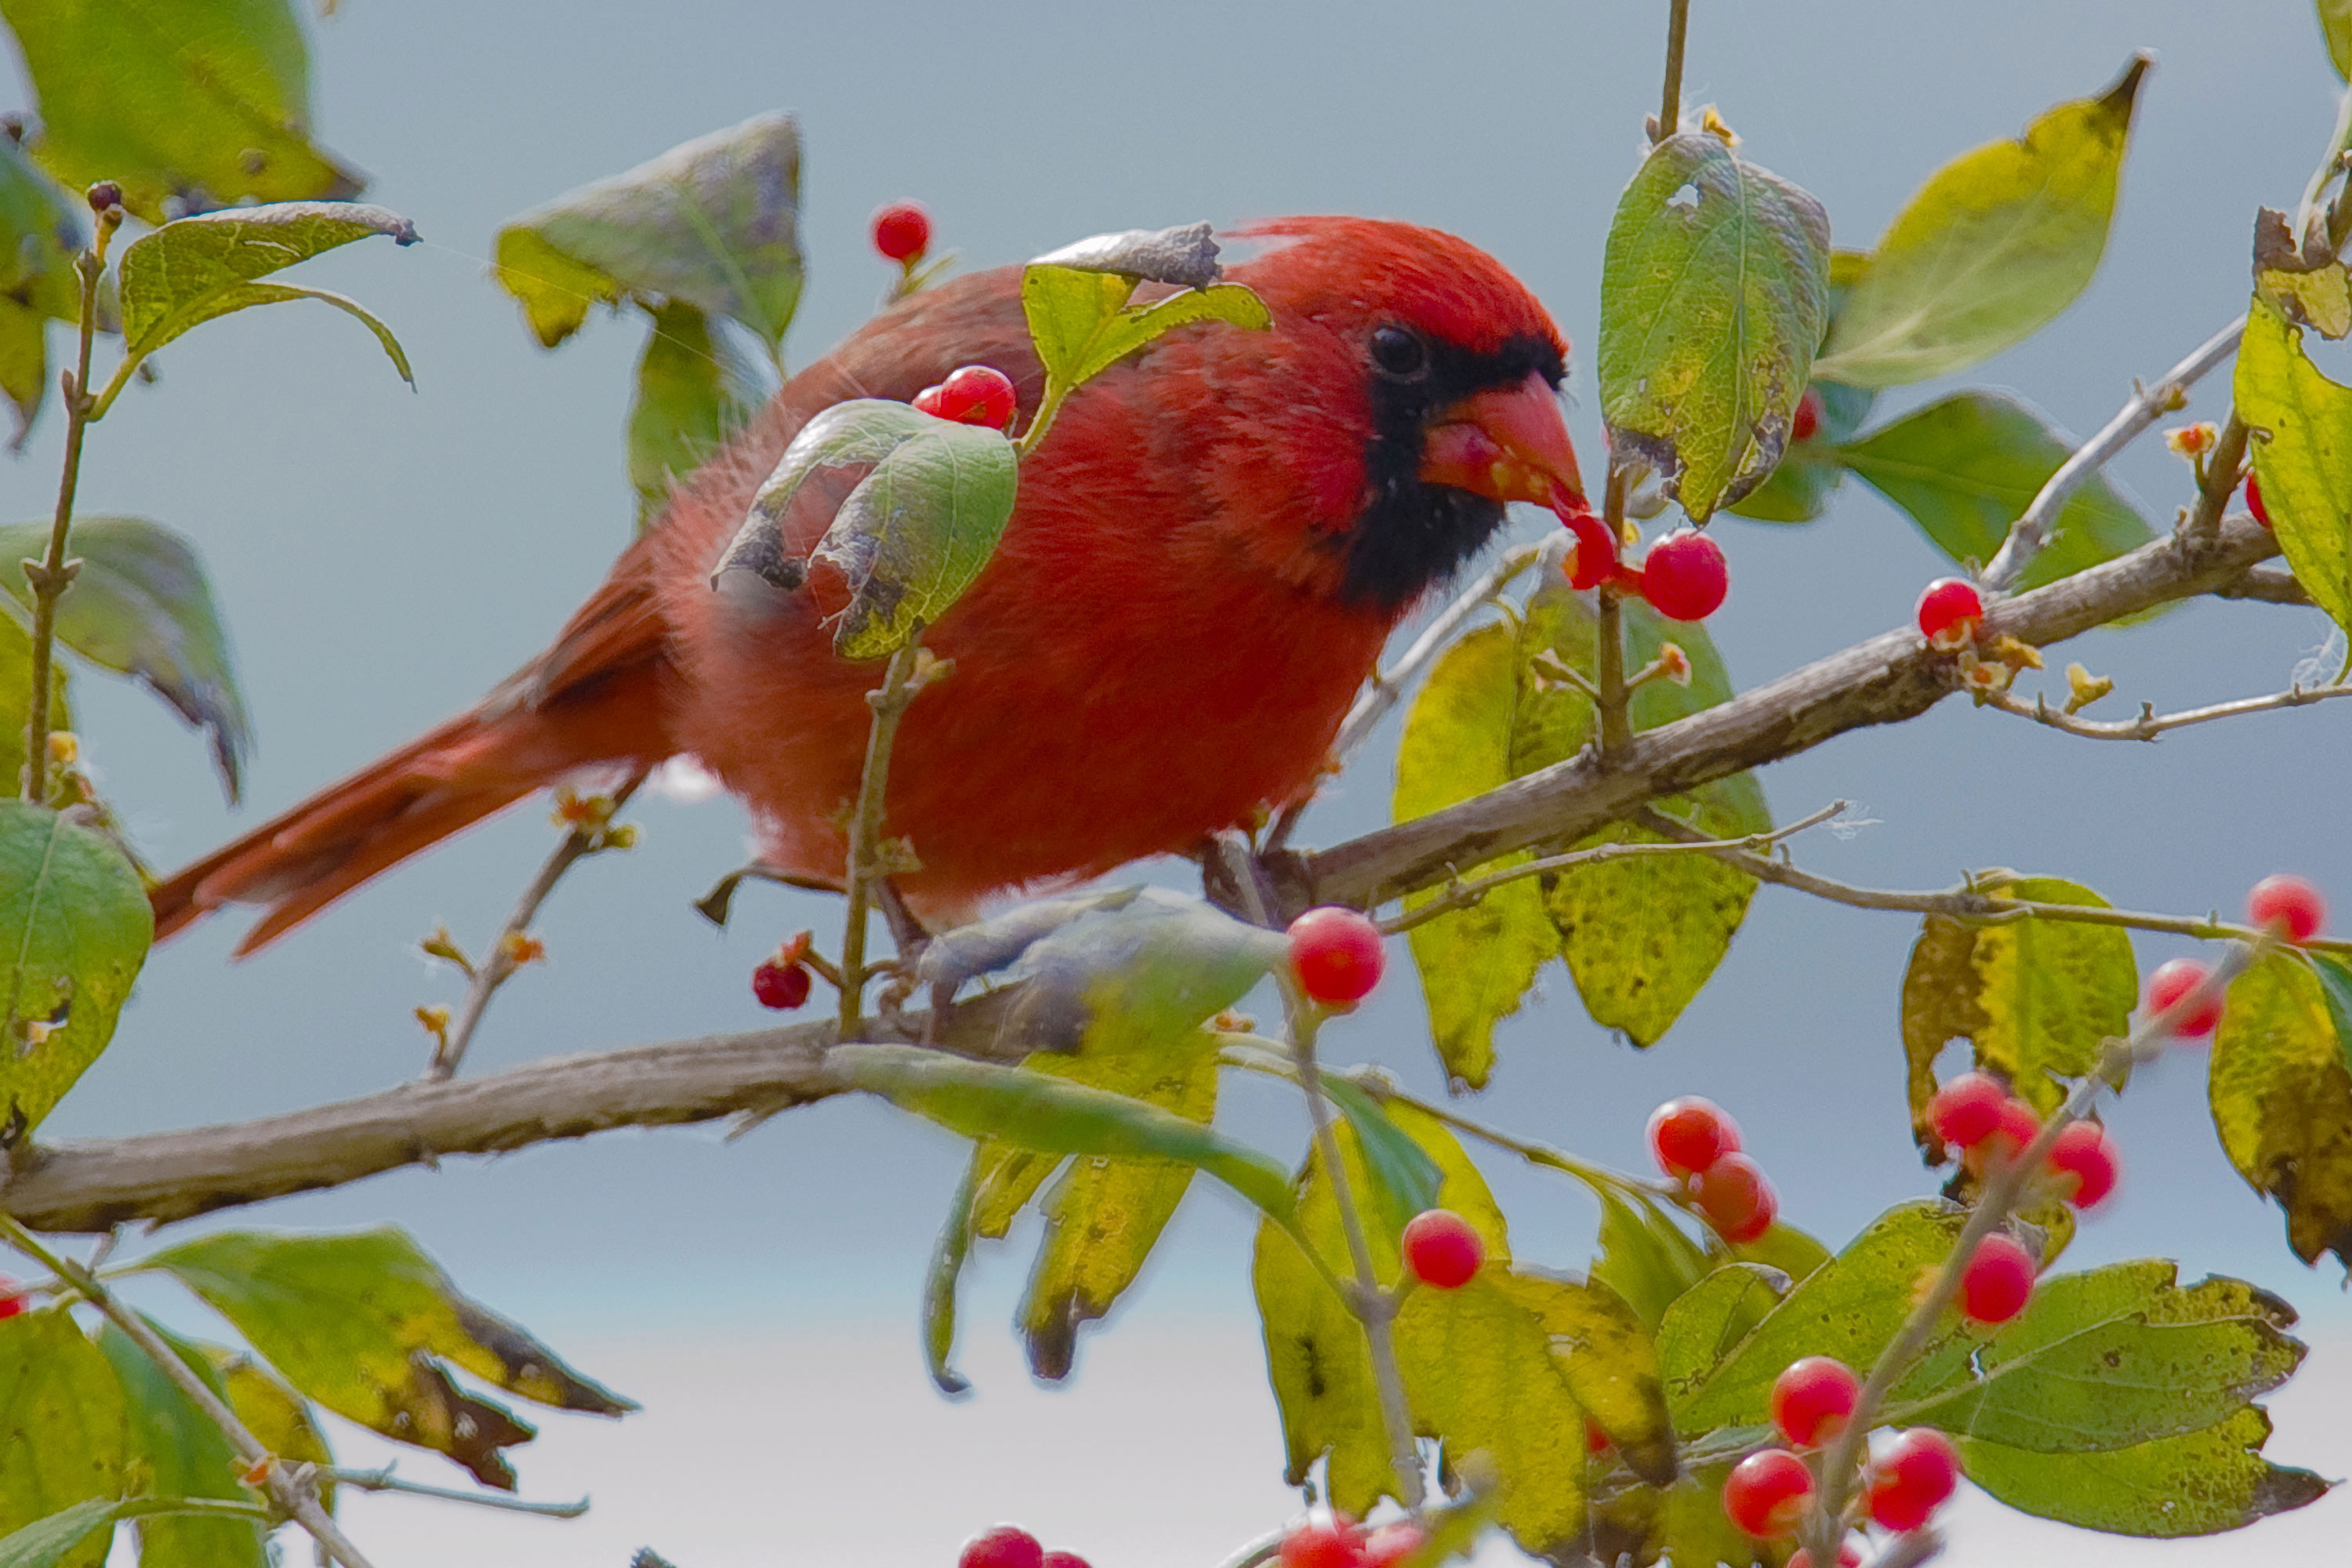 Berries How to Dress Cardinals in the Back Yard of Your Home (Great Tips)